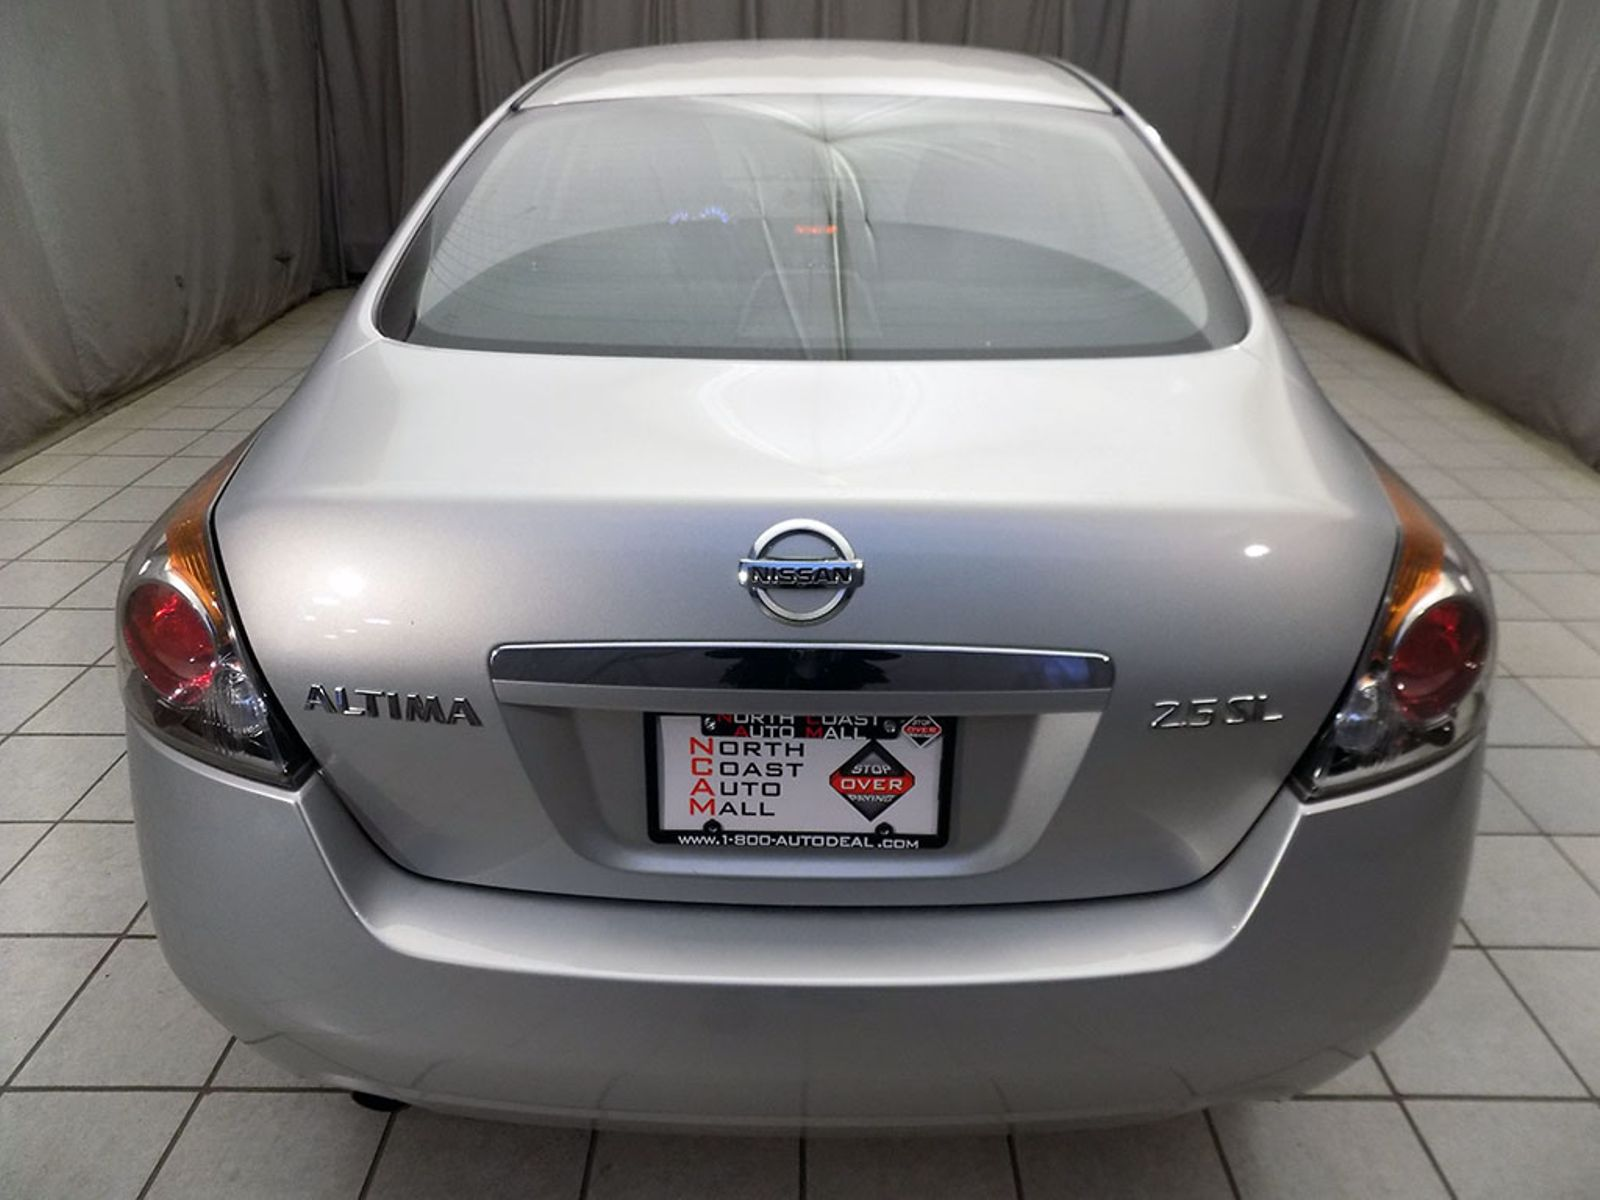 2007 Nissan Altima 25 S As low as 799 DOWN city Ohio North Coast